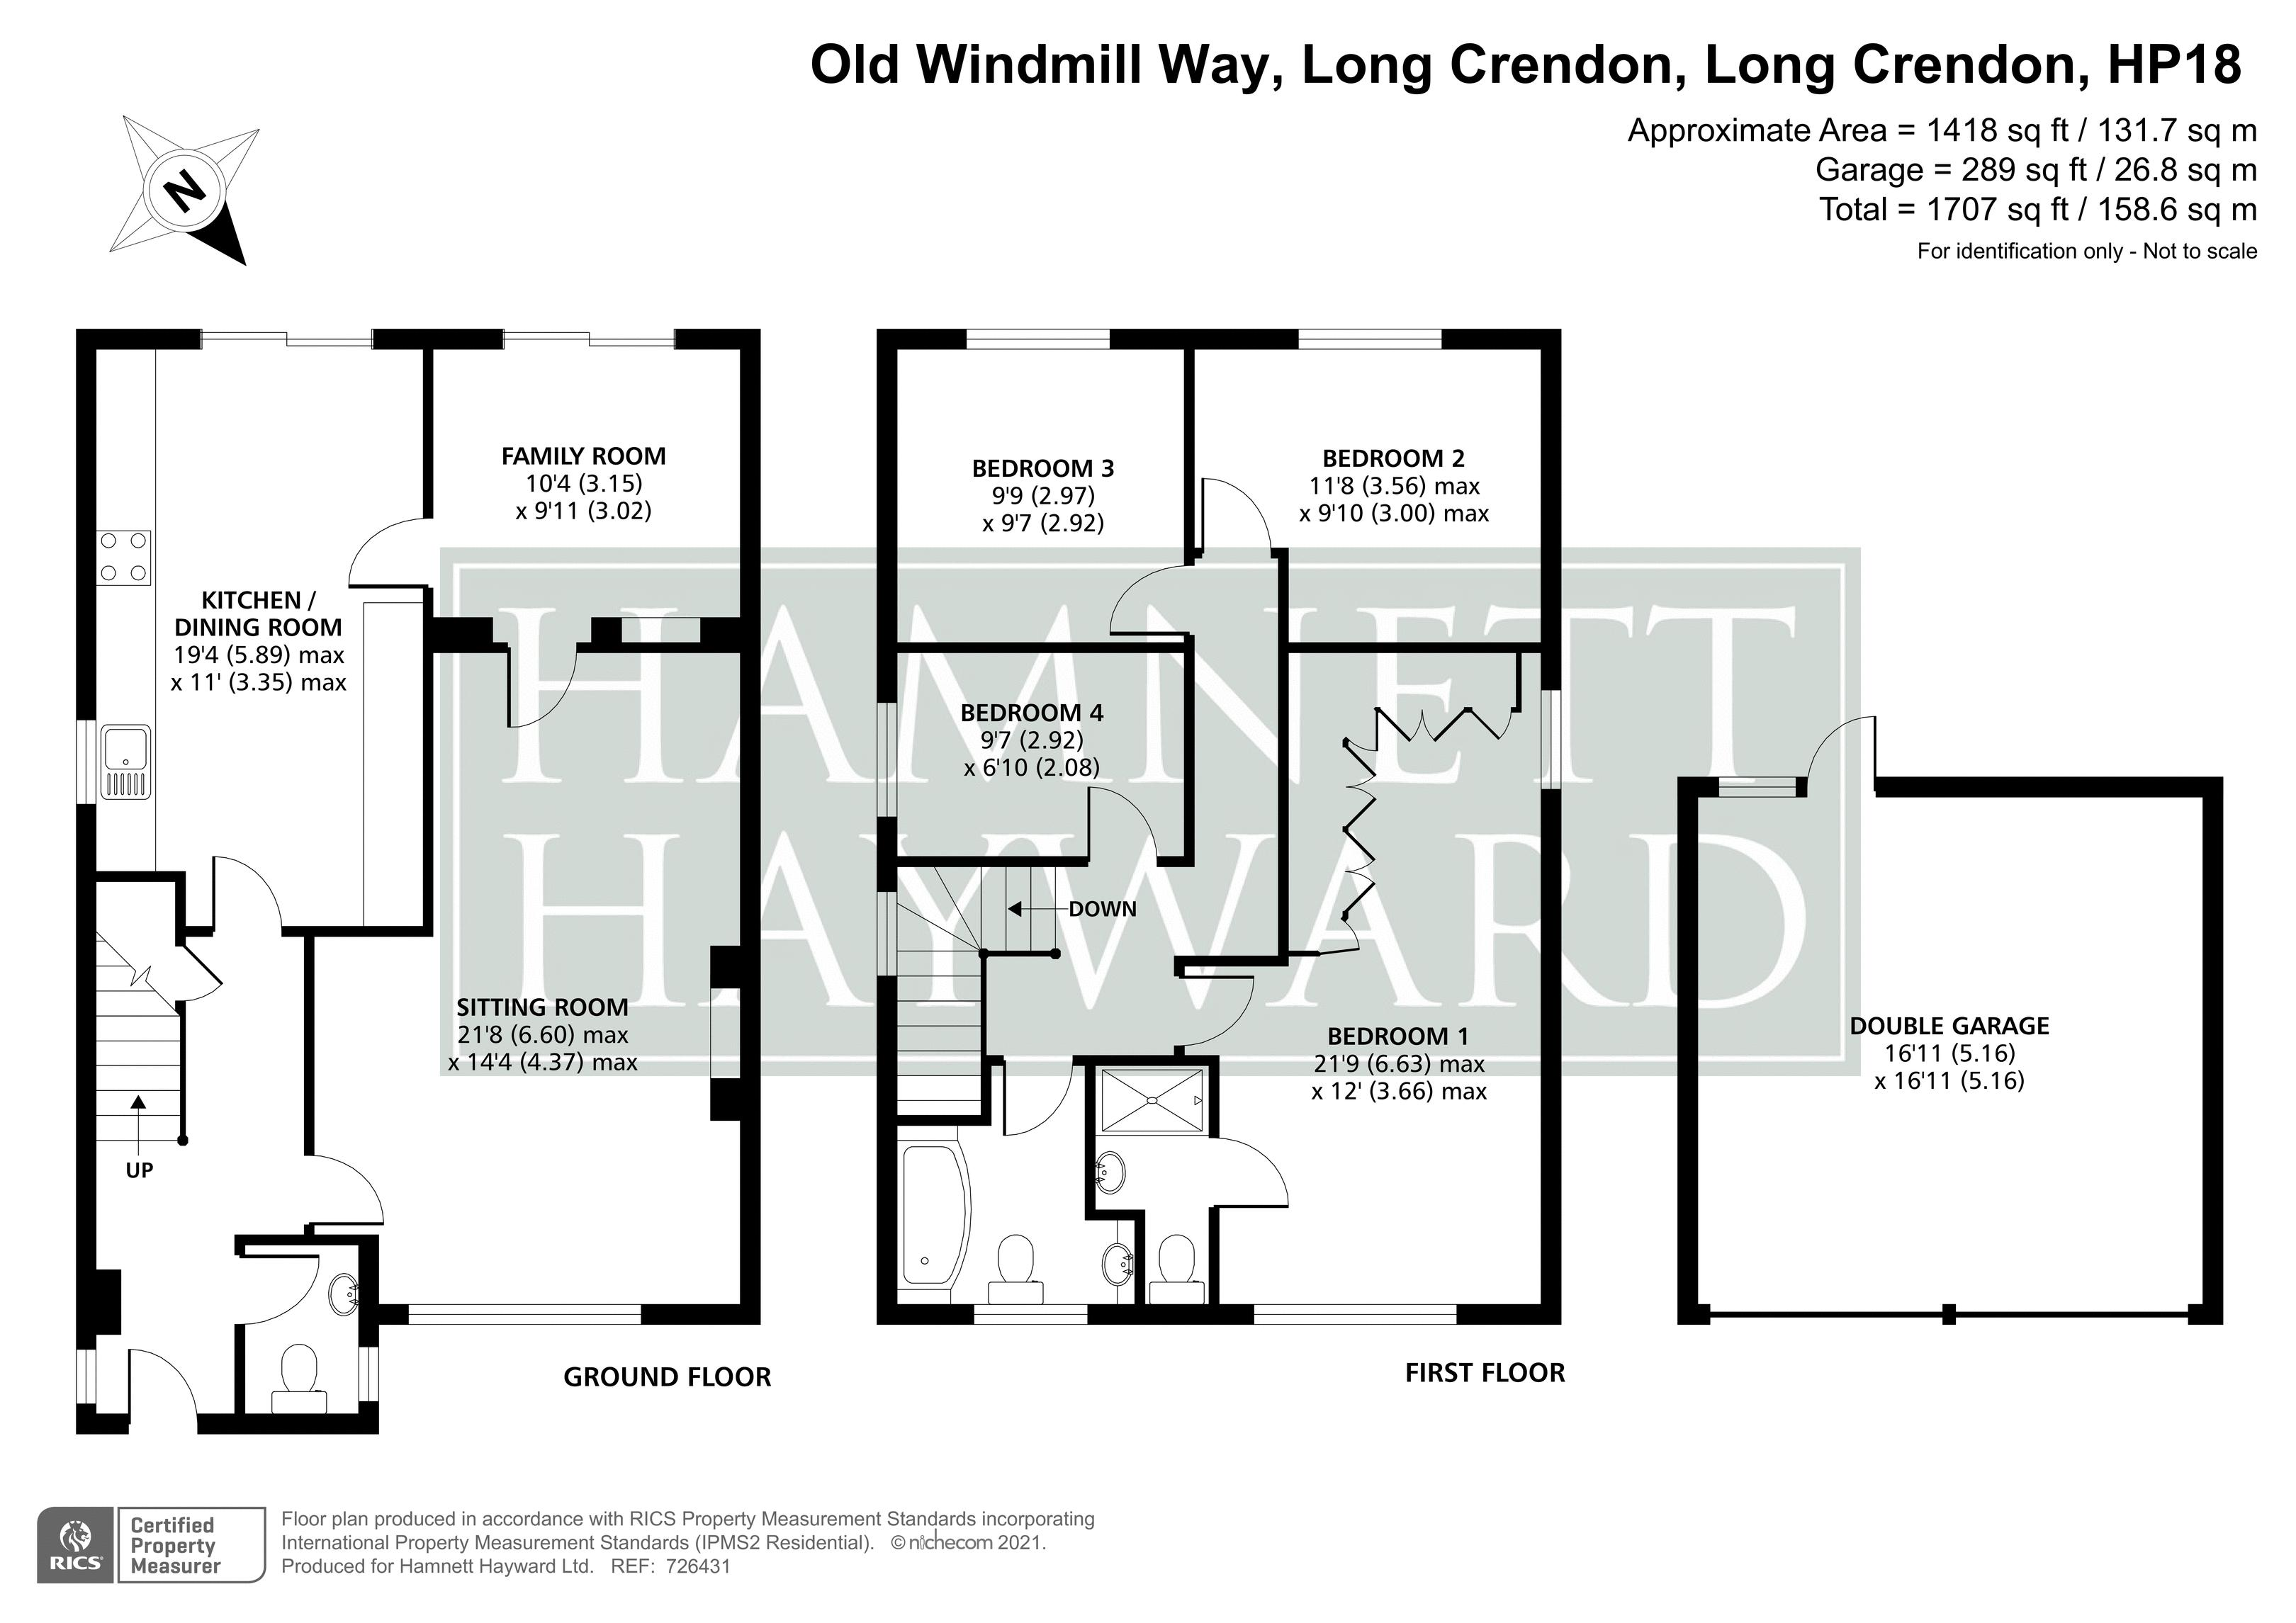 Old Windmill Way Long Crendon